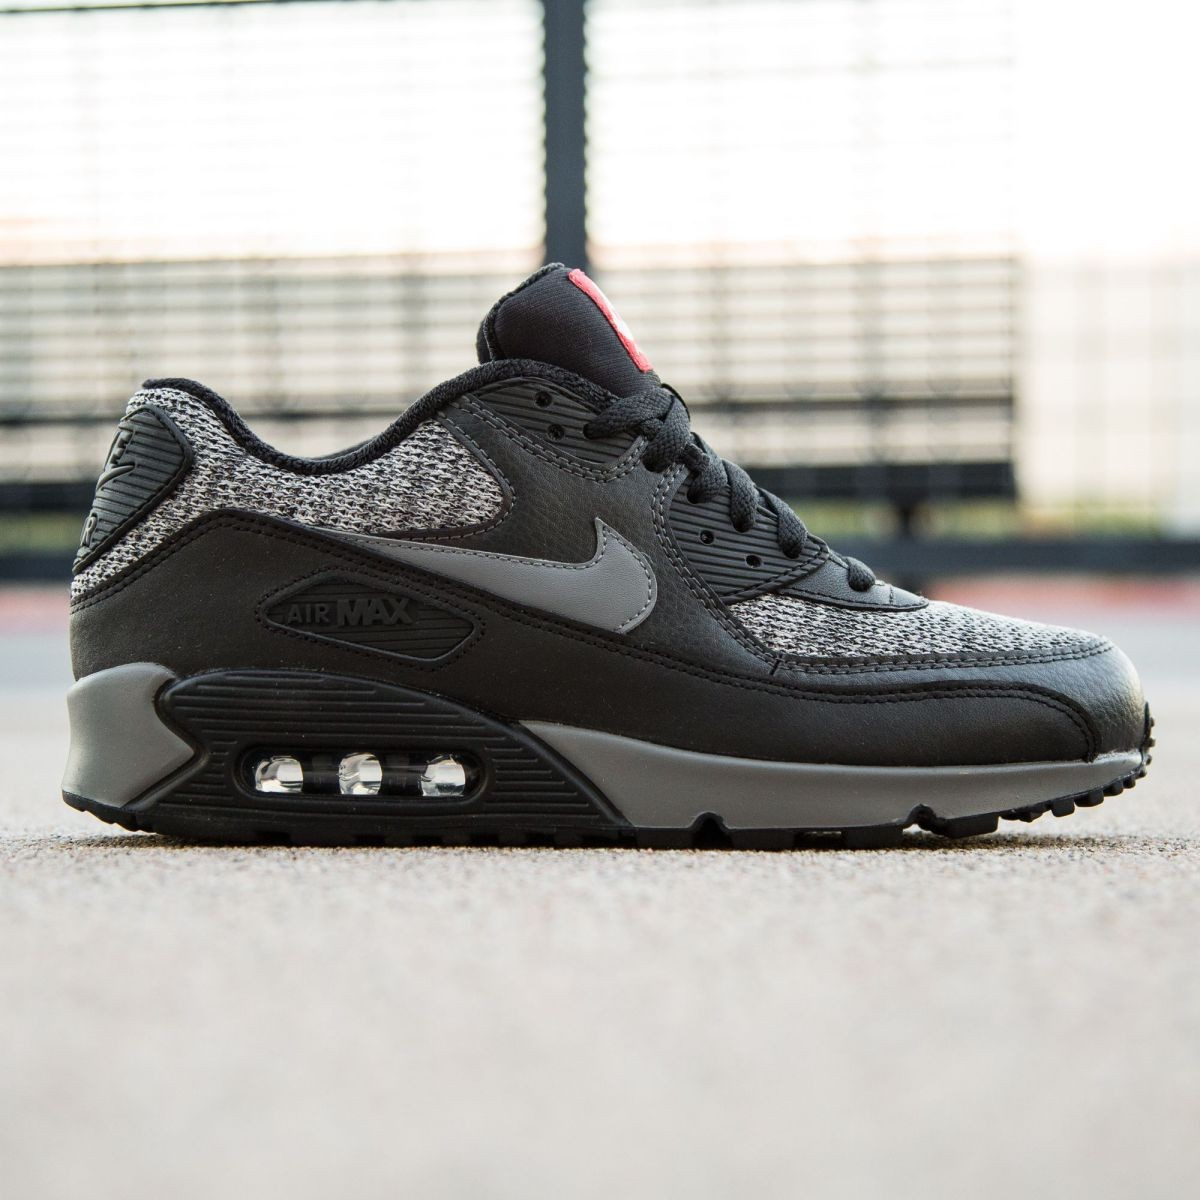 timeless design ff4be 8f537 Nike Men Air Max 90 Essential black cool grey anthracite university red